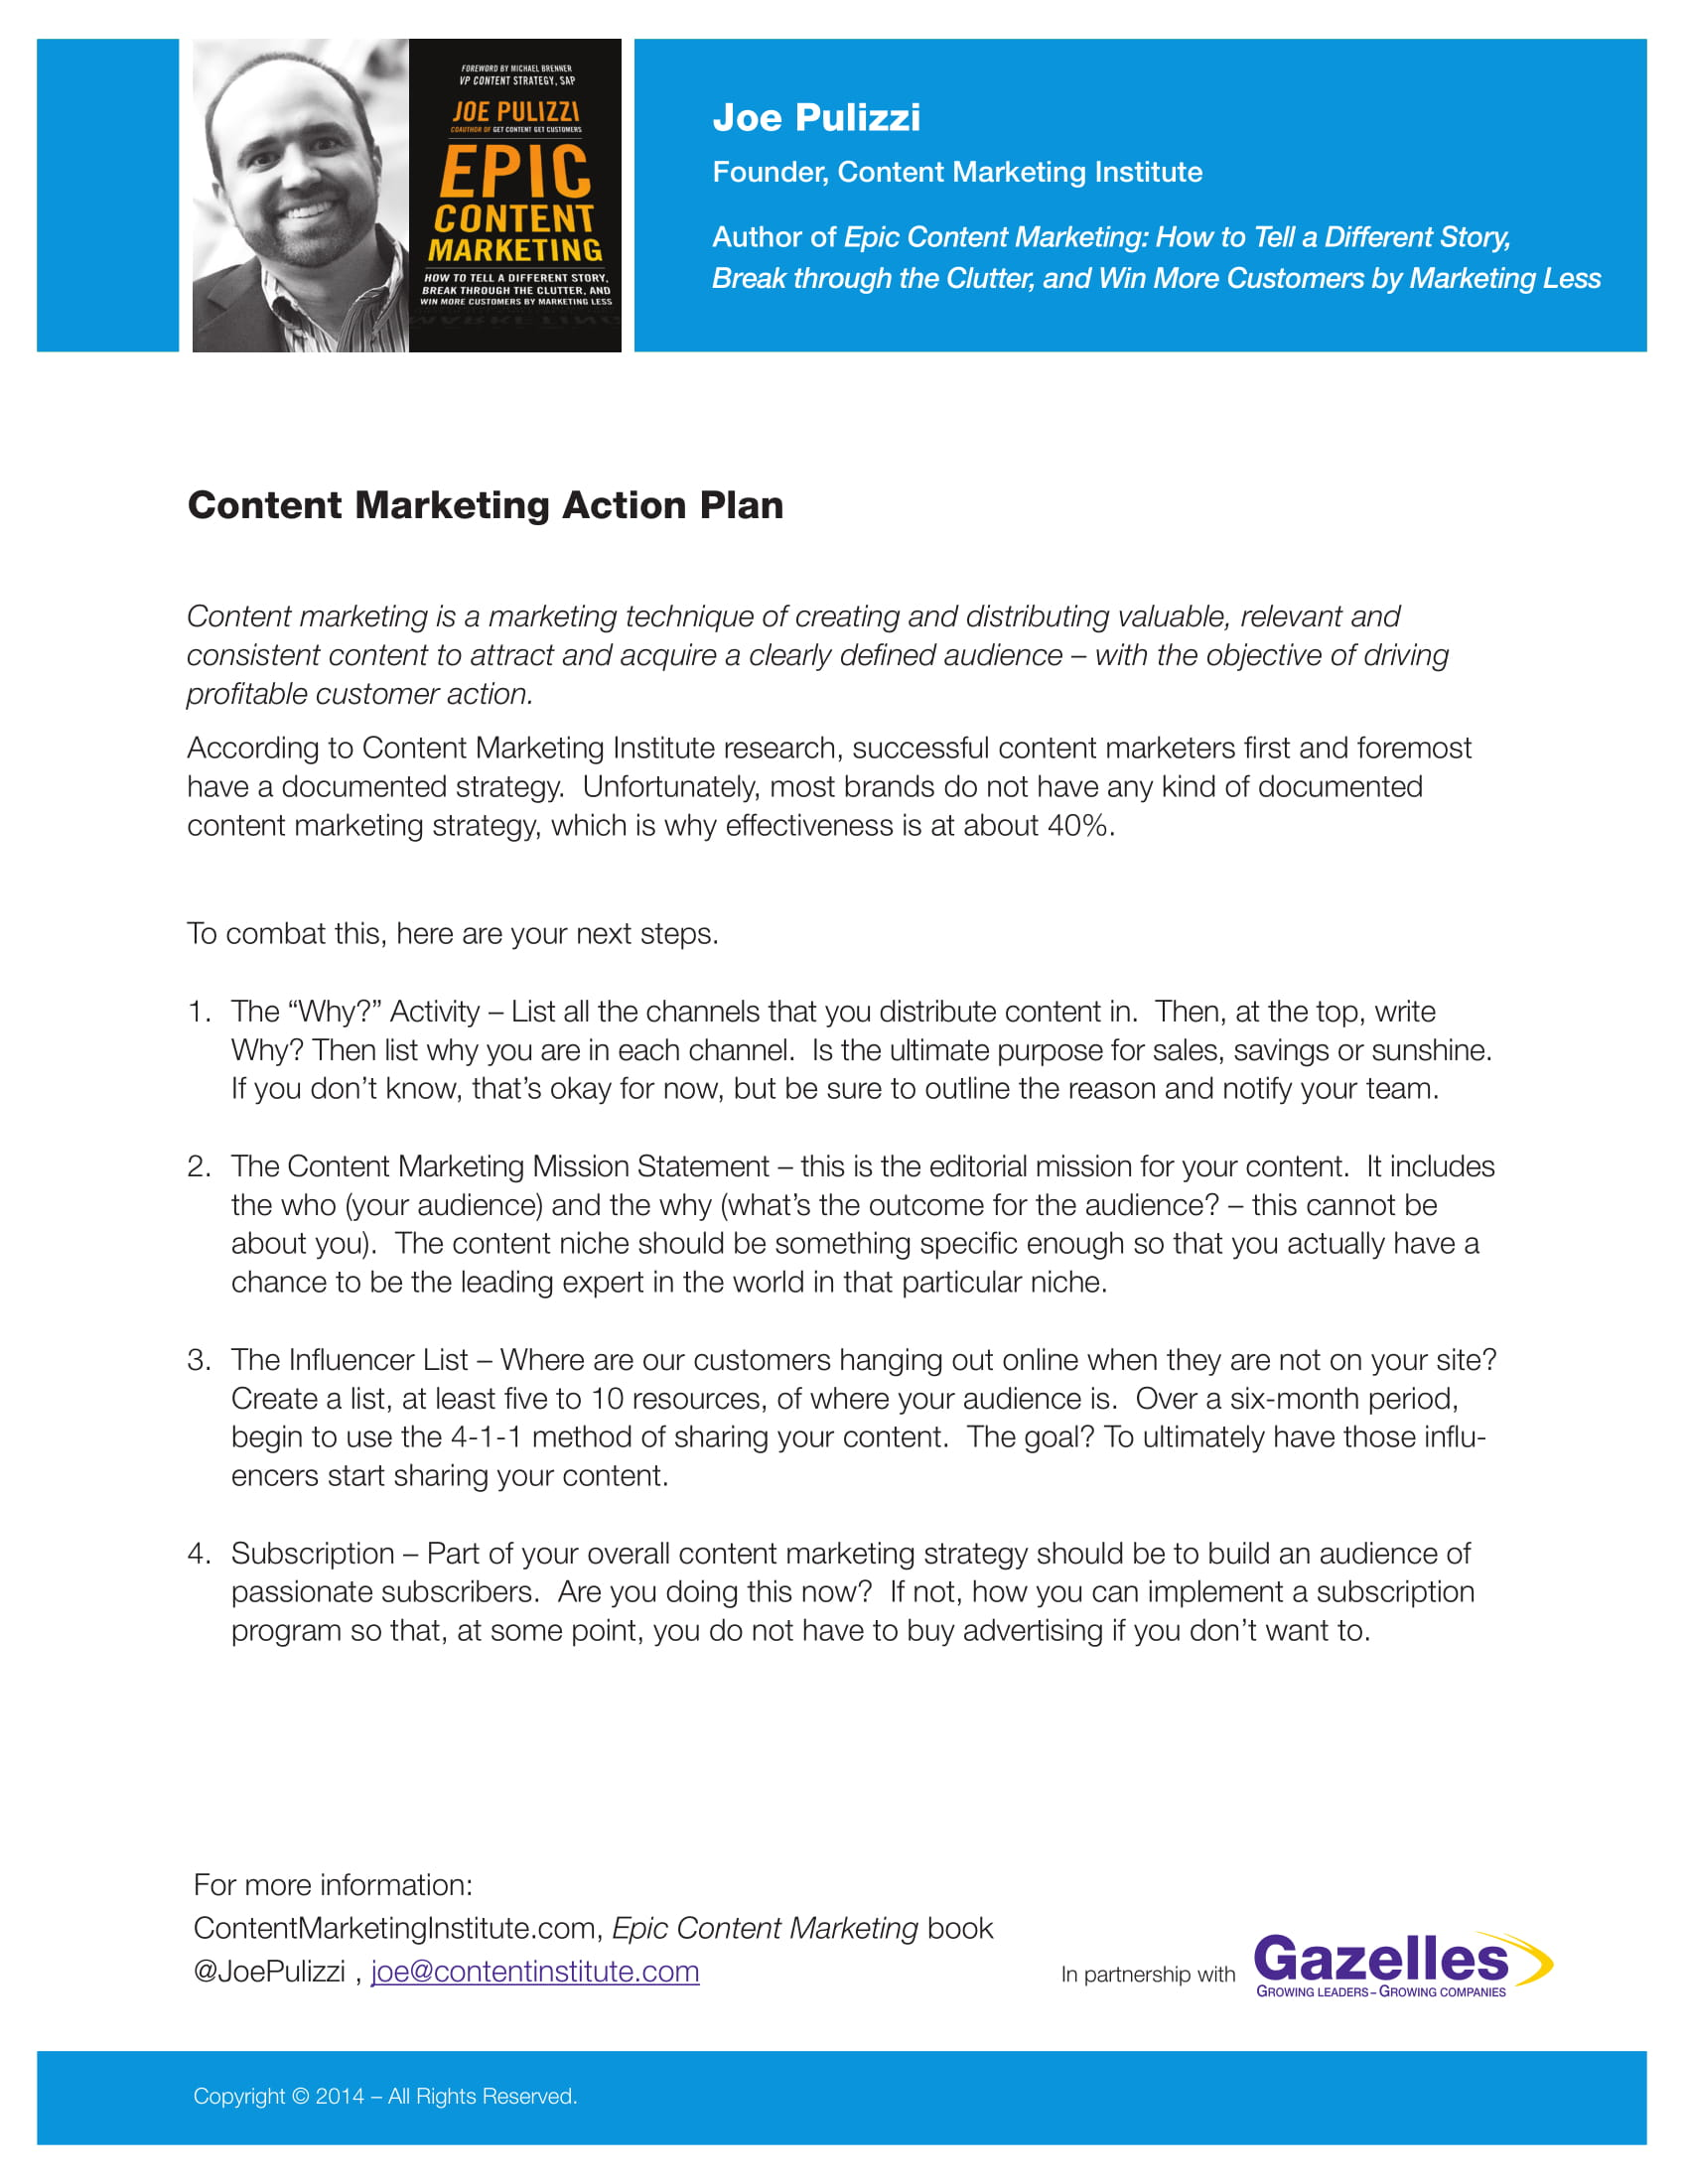 content marketing action plan example